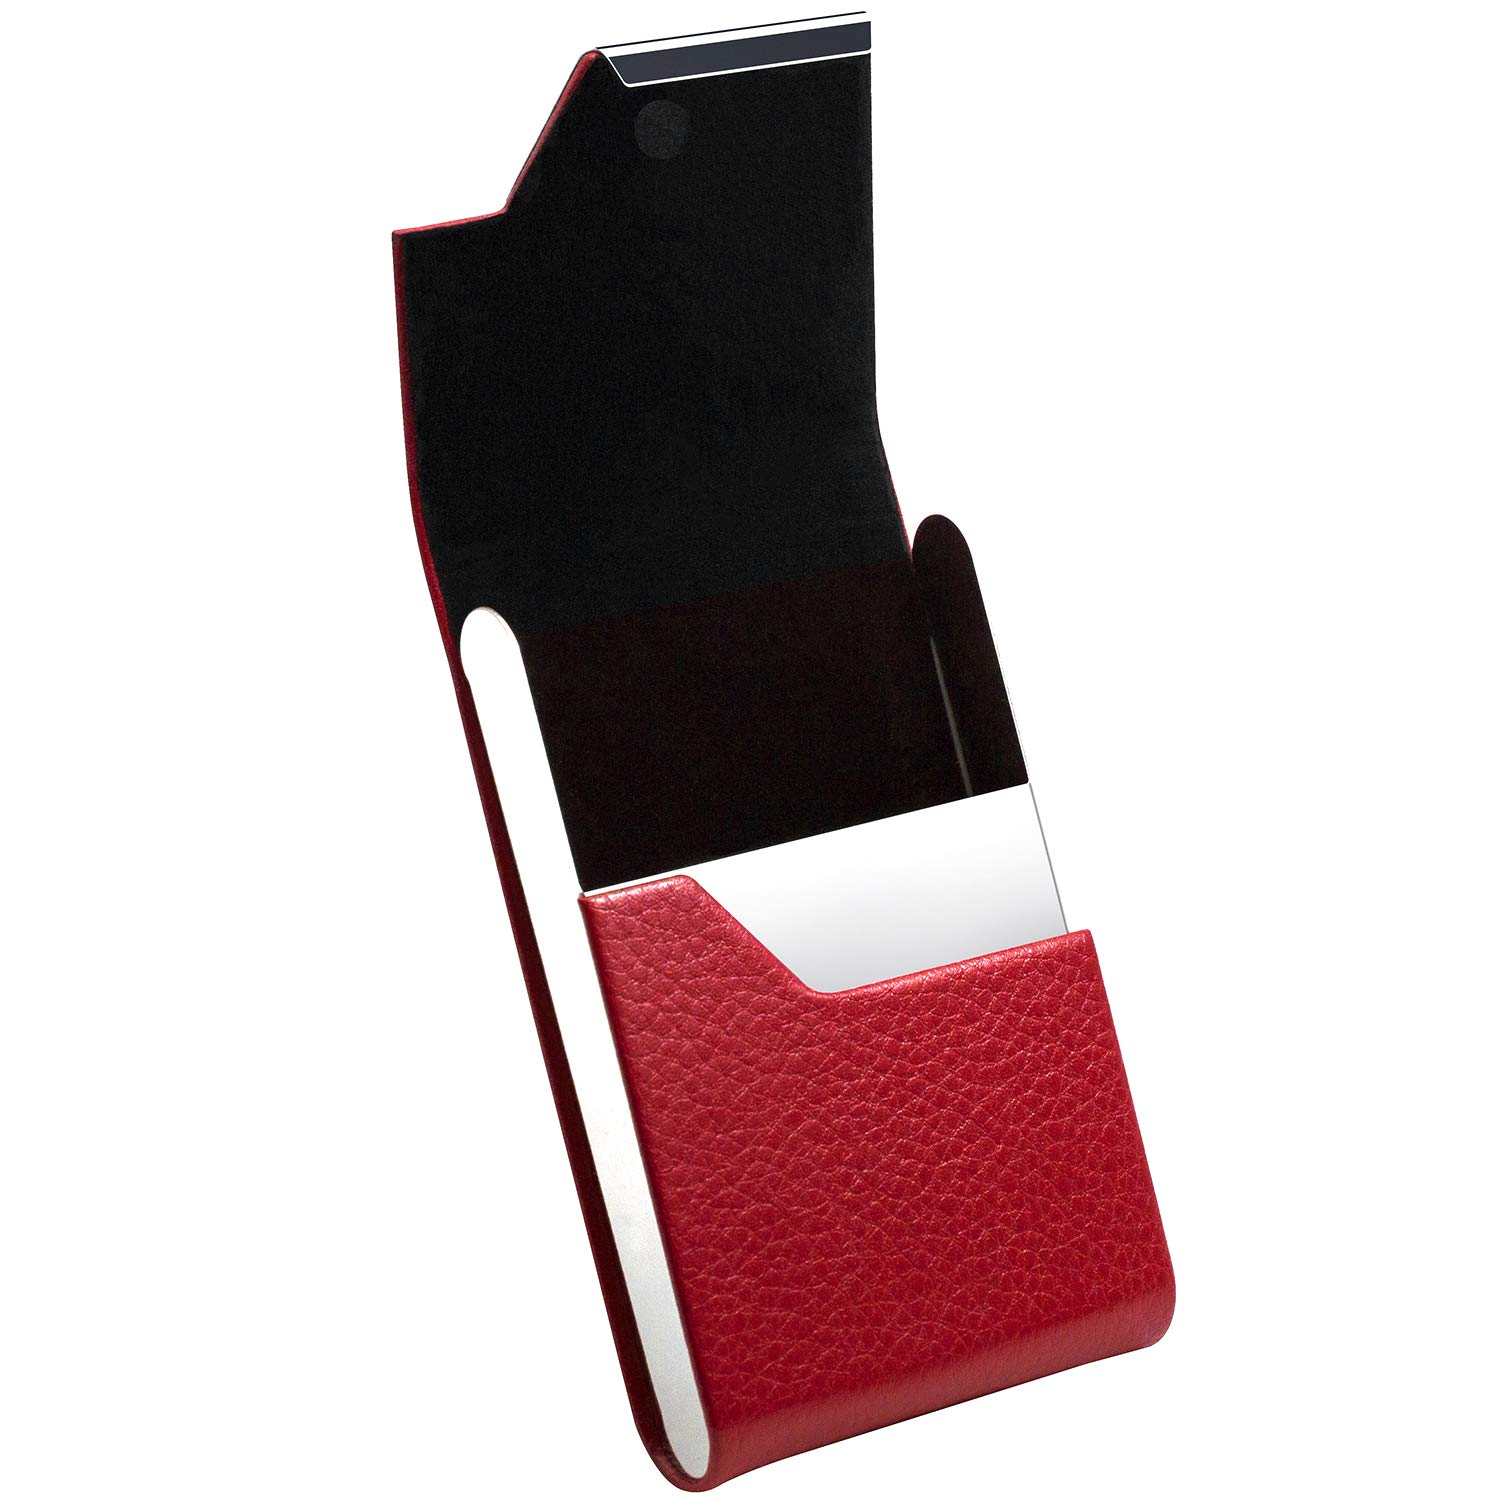 Padike Professional Business Card Holder Business Card Case Luxury PU Leather /& Stainless Steel Card Holder Credit Card Holder Pink Keep Business Cards in Immaculate Condition.